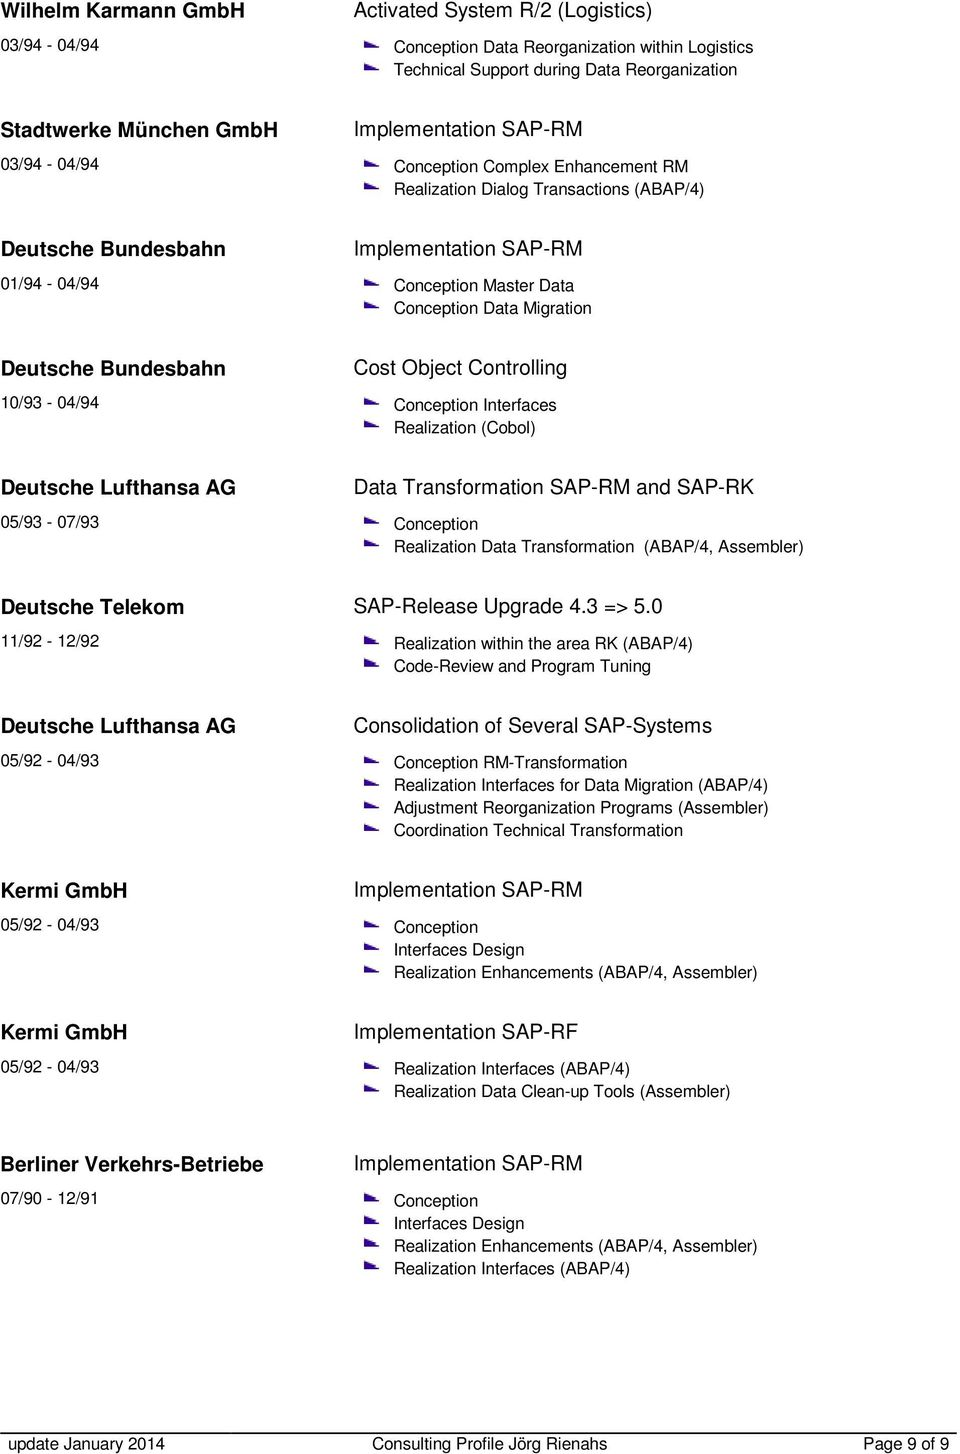 (Cobol) Deutsche Lufthansa 05/93-07/93 Data Transformation SAP-RM and SAP-RK Realization Data Transformation (ABAP/4, Assembler) Deutsche Telekom 11/92-12/92 SAP-Release Upgrade 4.3 => 5.